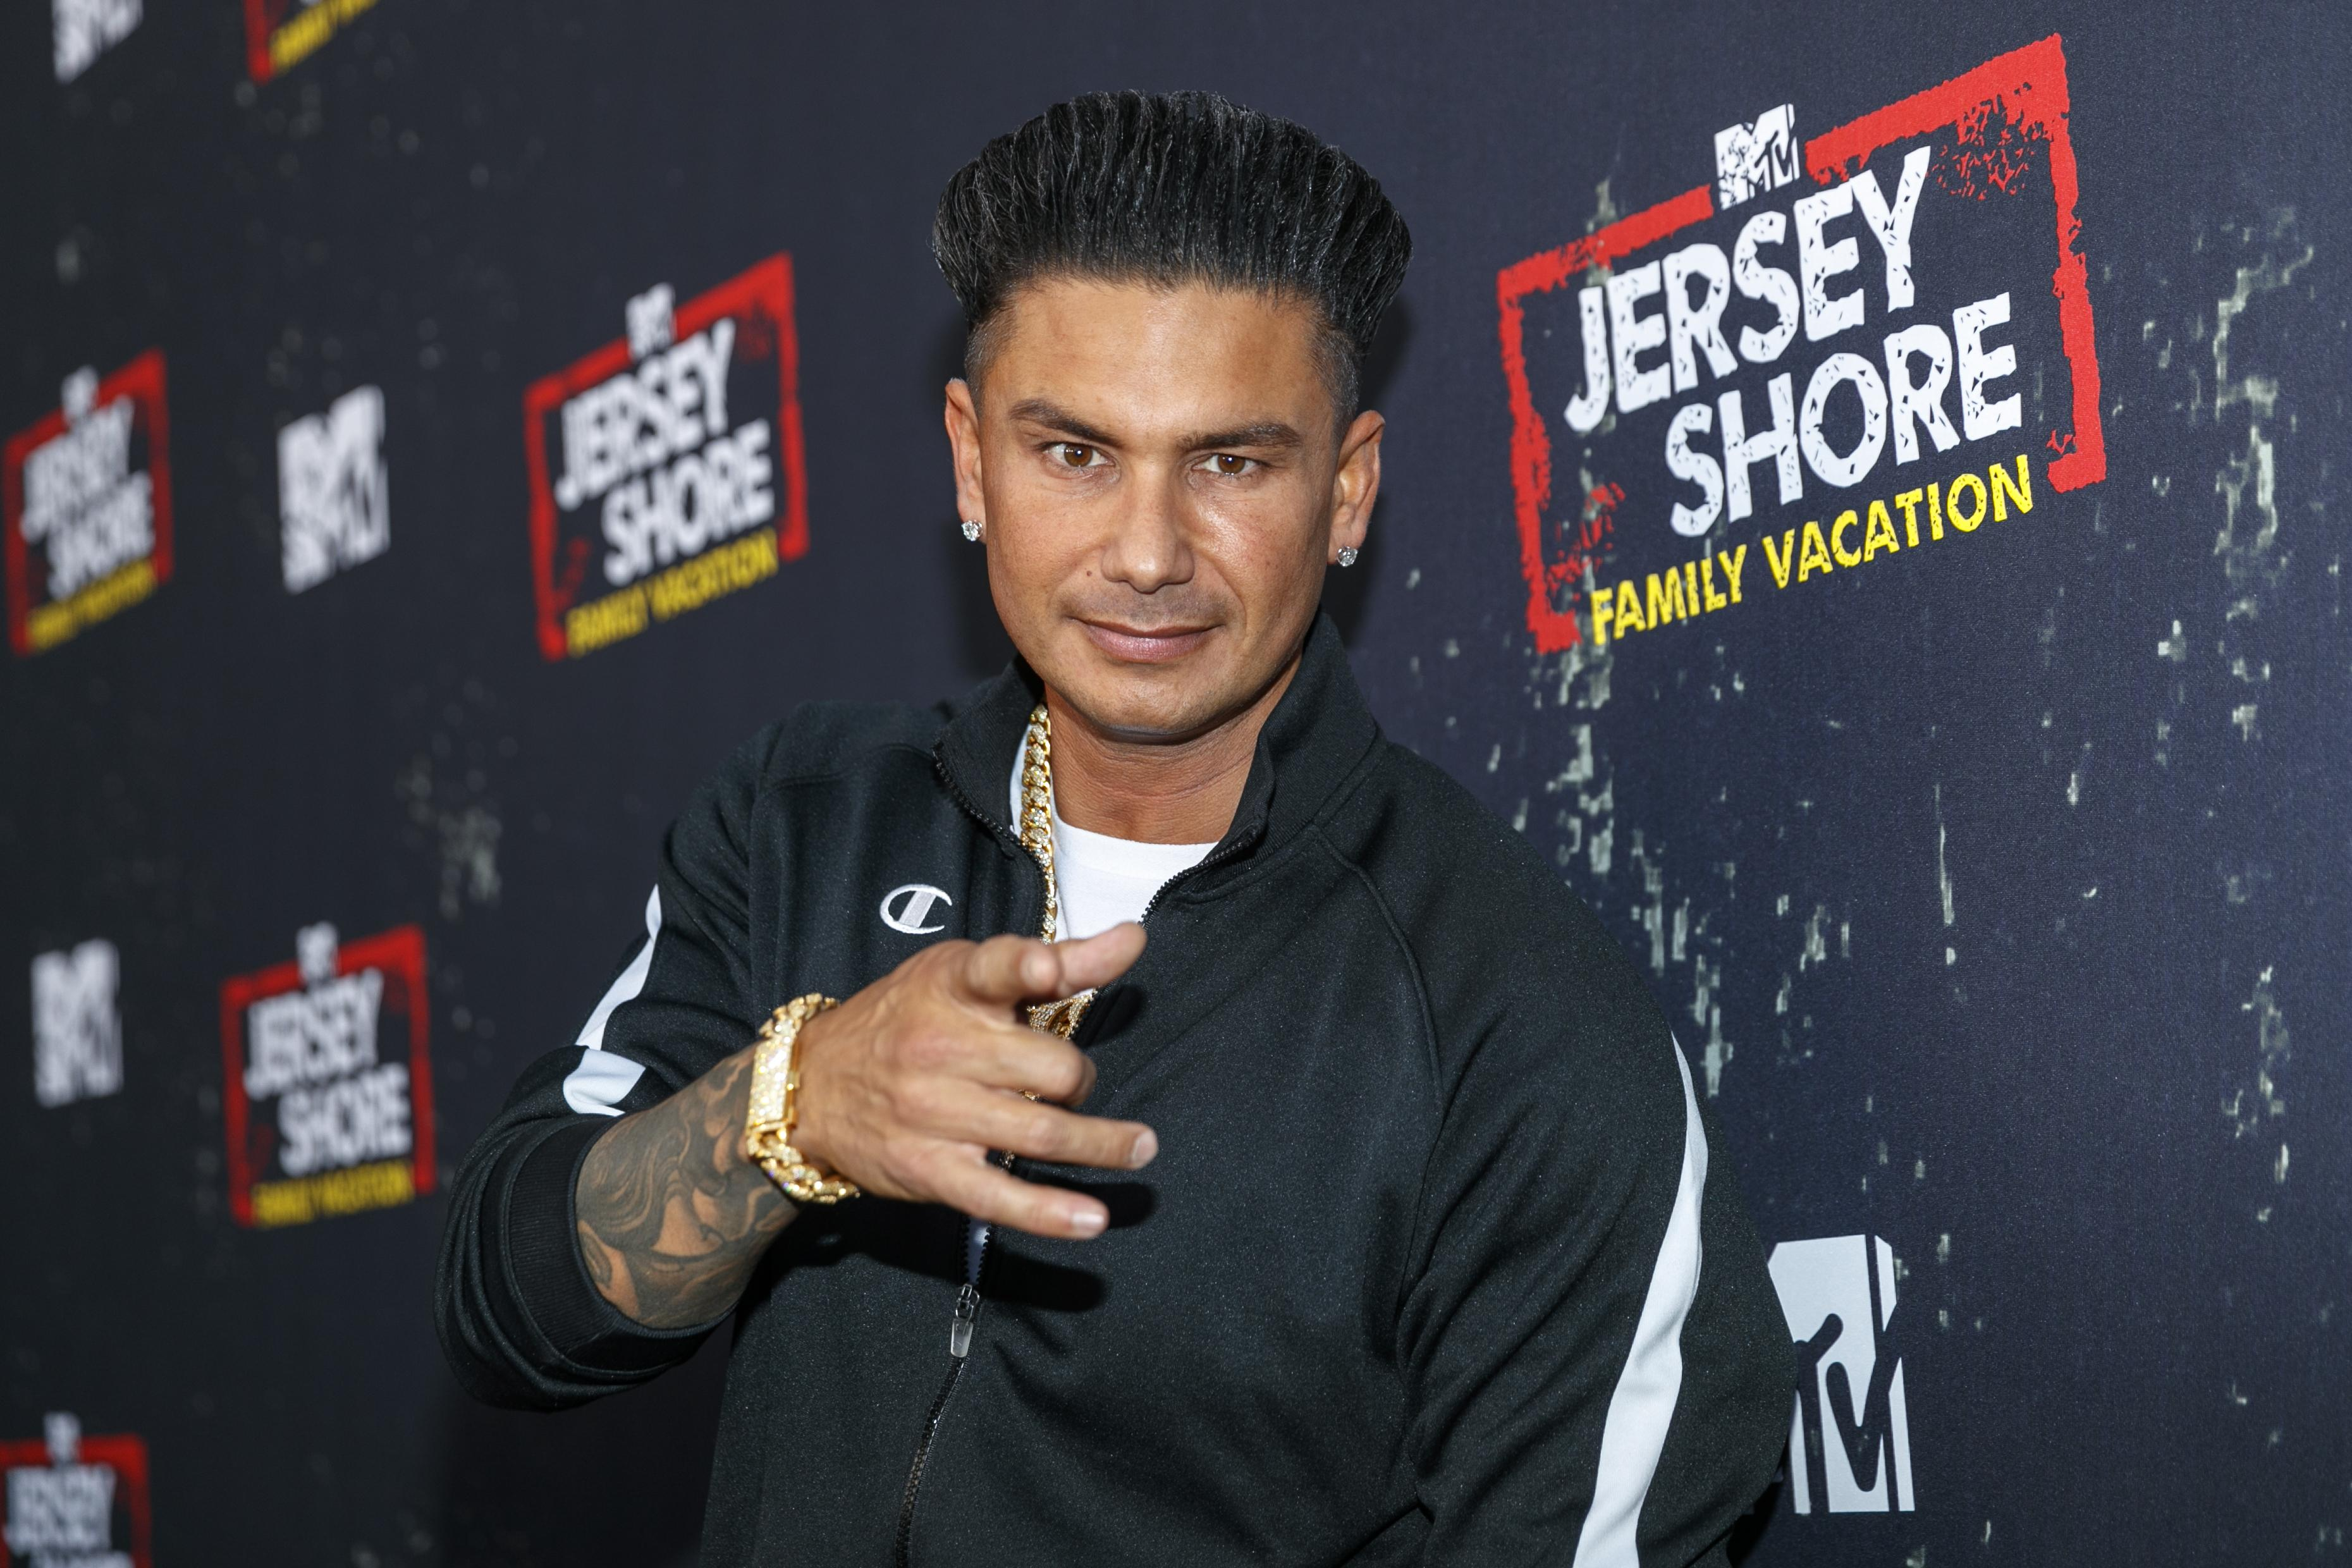 Which Jersey Shore Star Has The Highest Net Worth In 2018